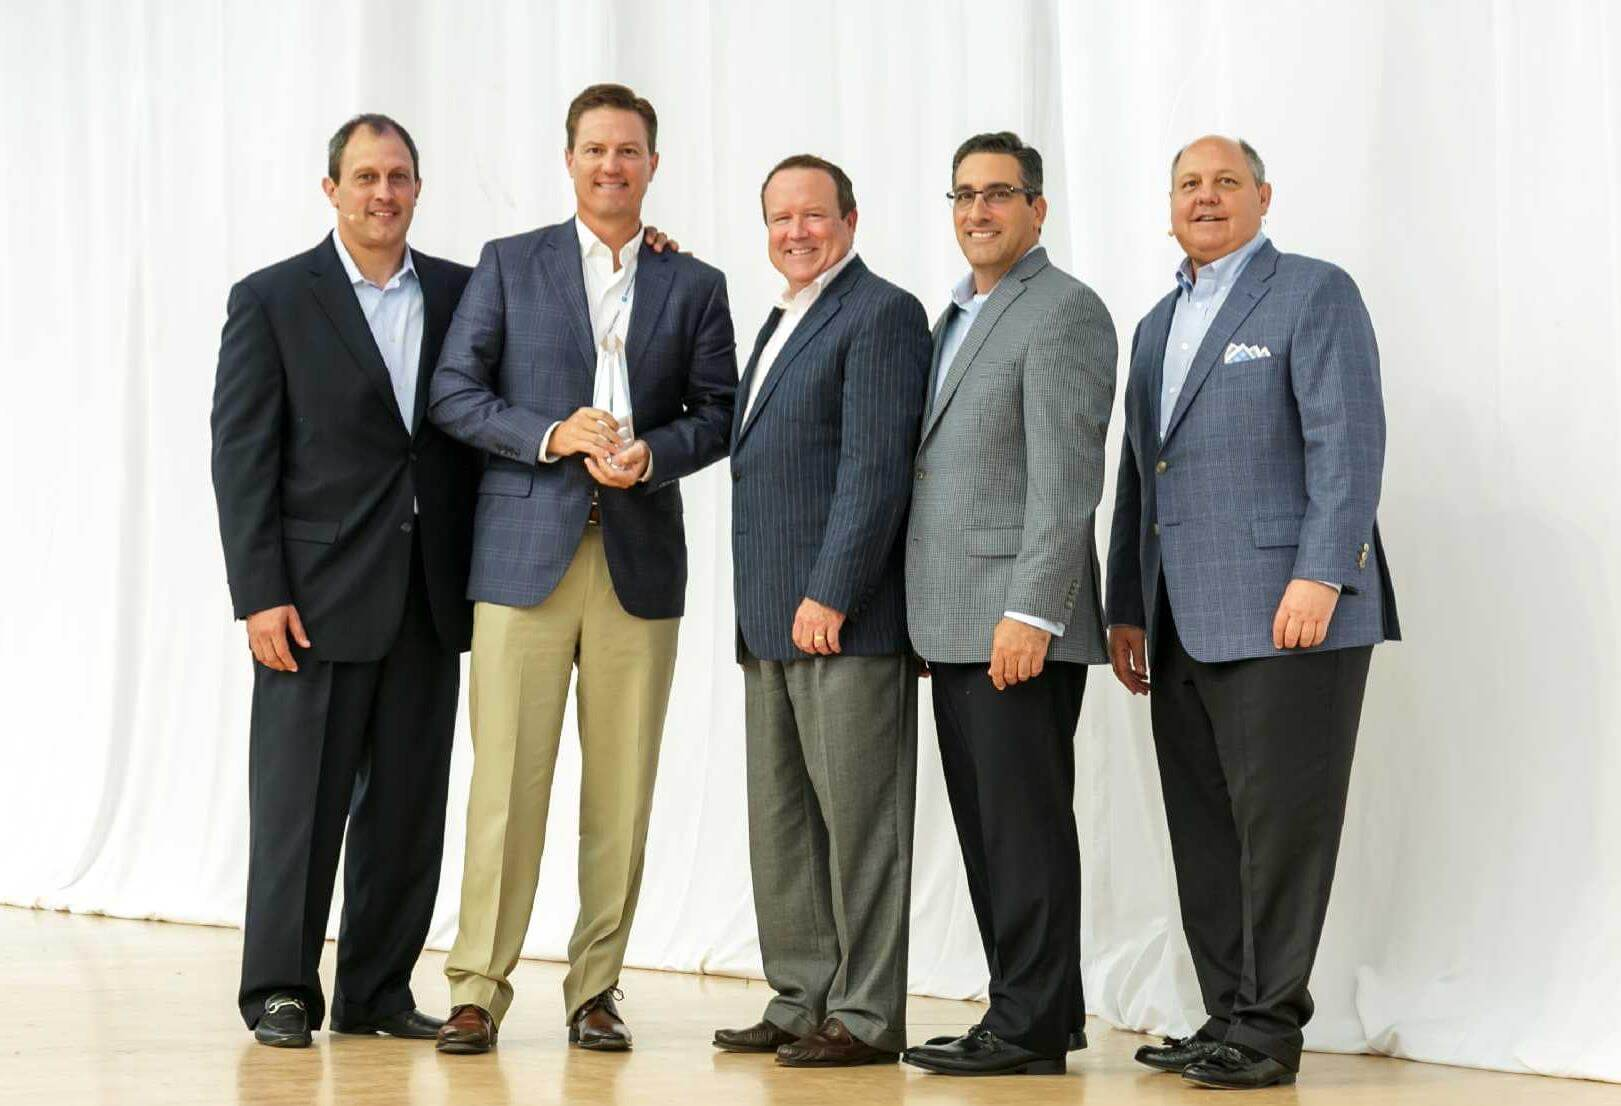 The Swenson Group - Dealer Achievement Award